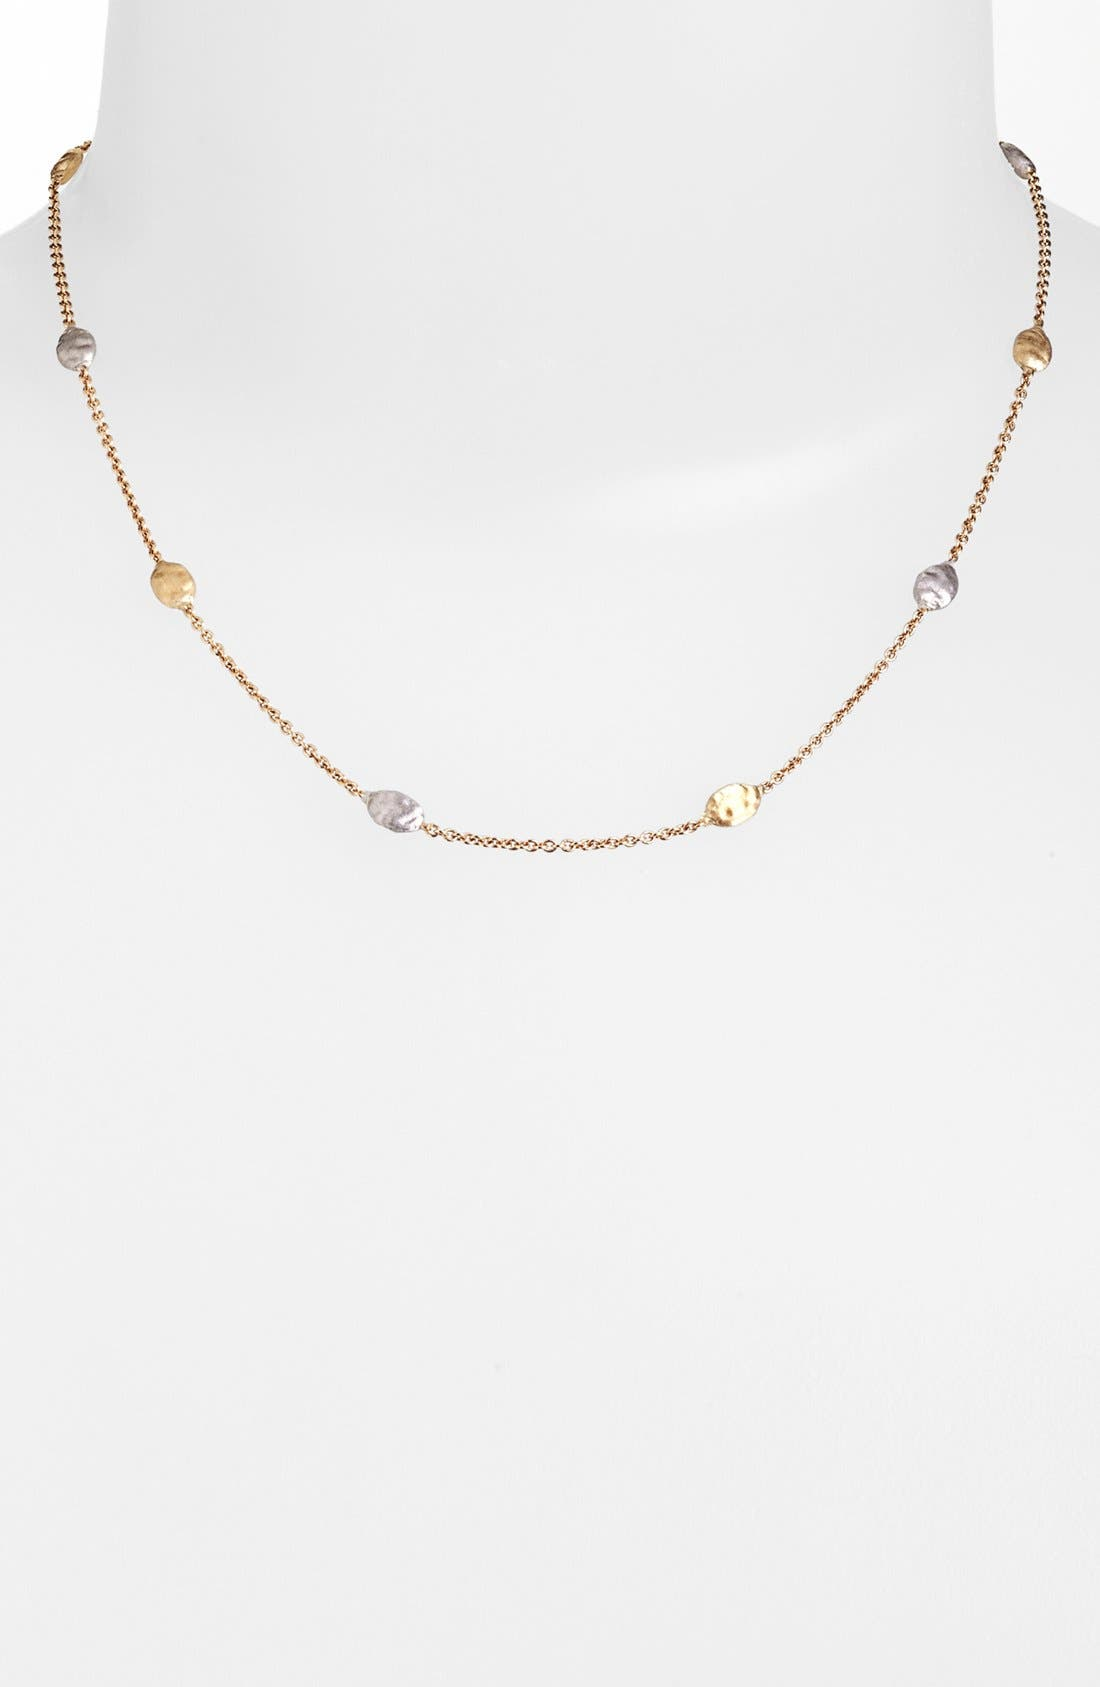 Main Image - Marco Bicego 'Siviglia' Two-Tone Necklace (Nordstrom Exclusive)